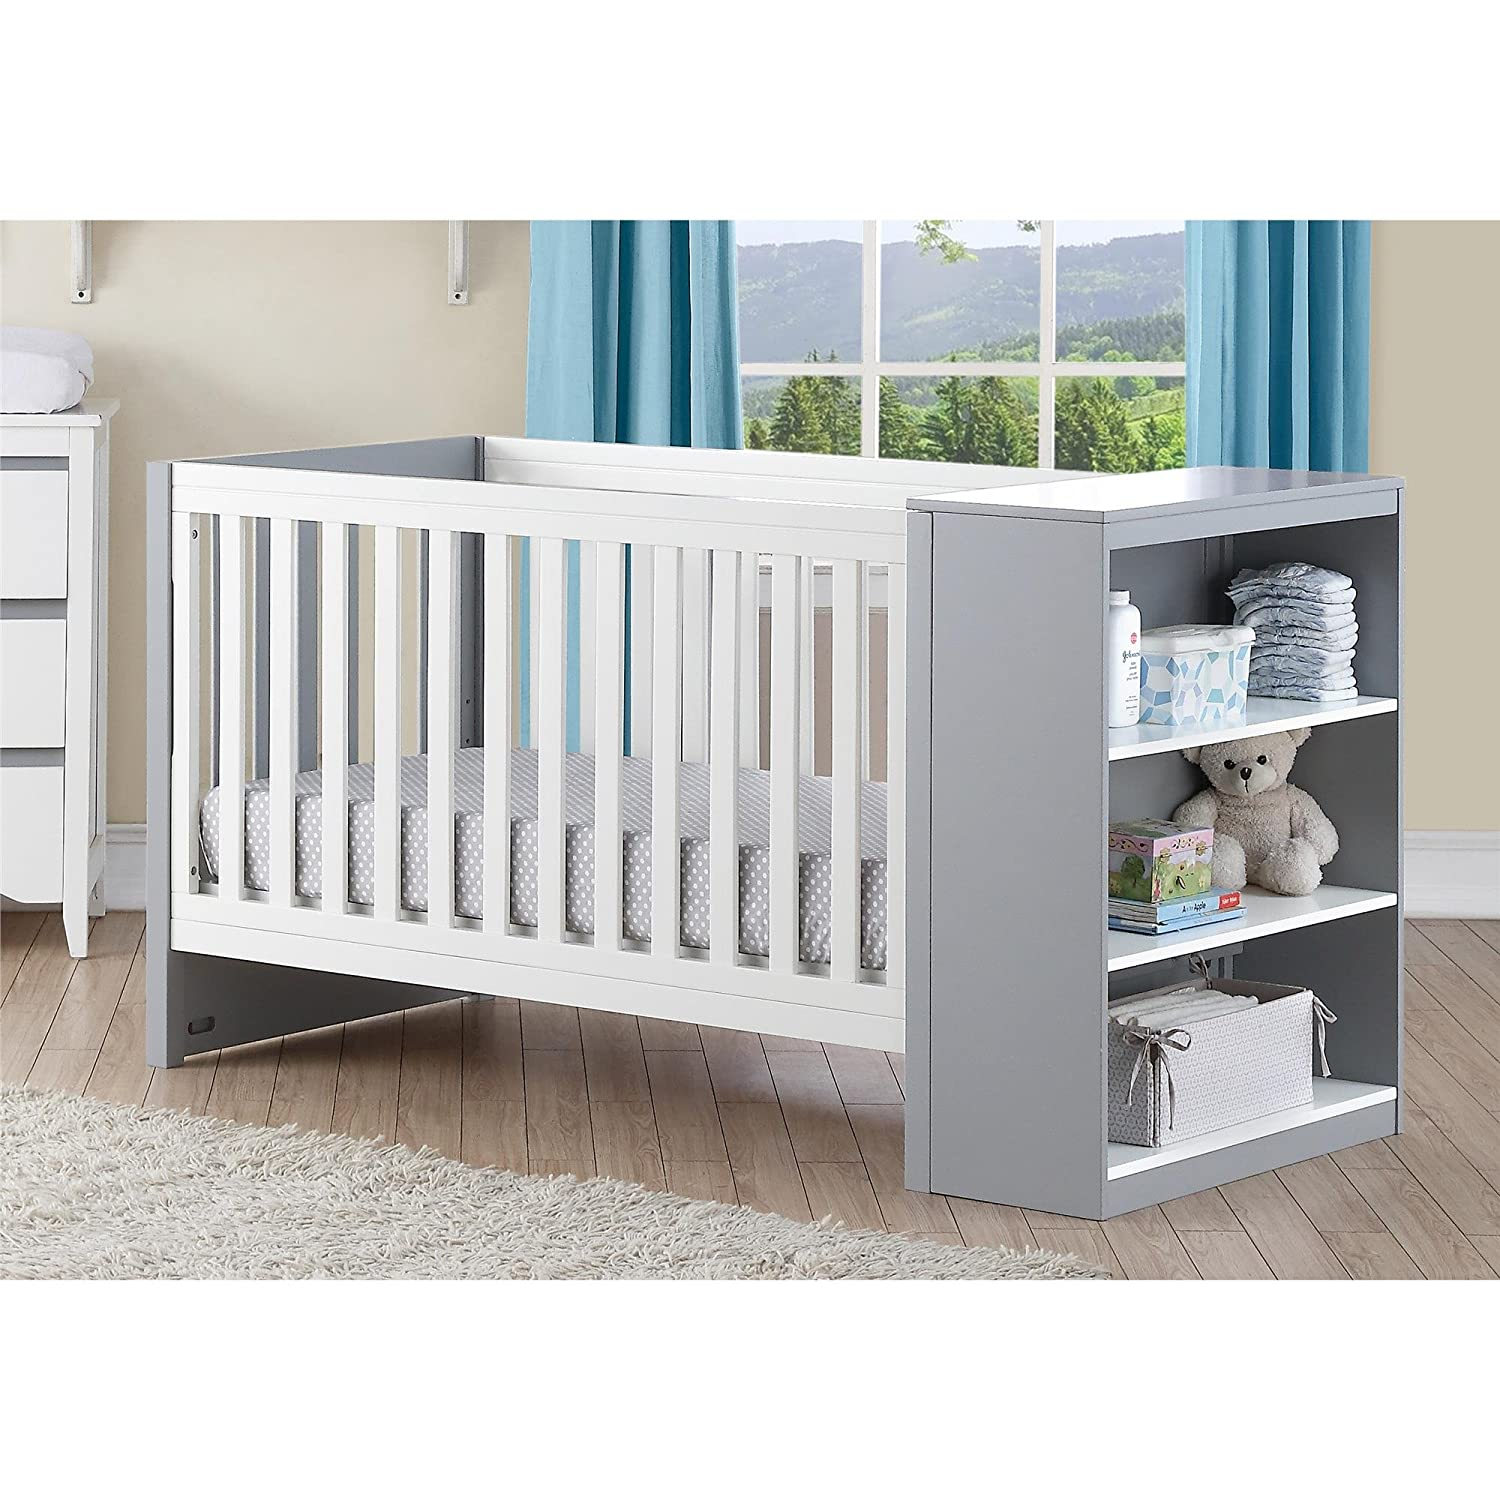 amazoncom  baby relax ayla in convertible crib with storage  - amazoncom  baby relax ayla in convertible crib with storagewhitegray  baby